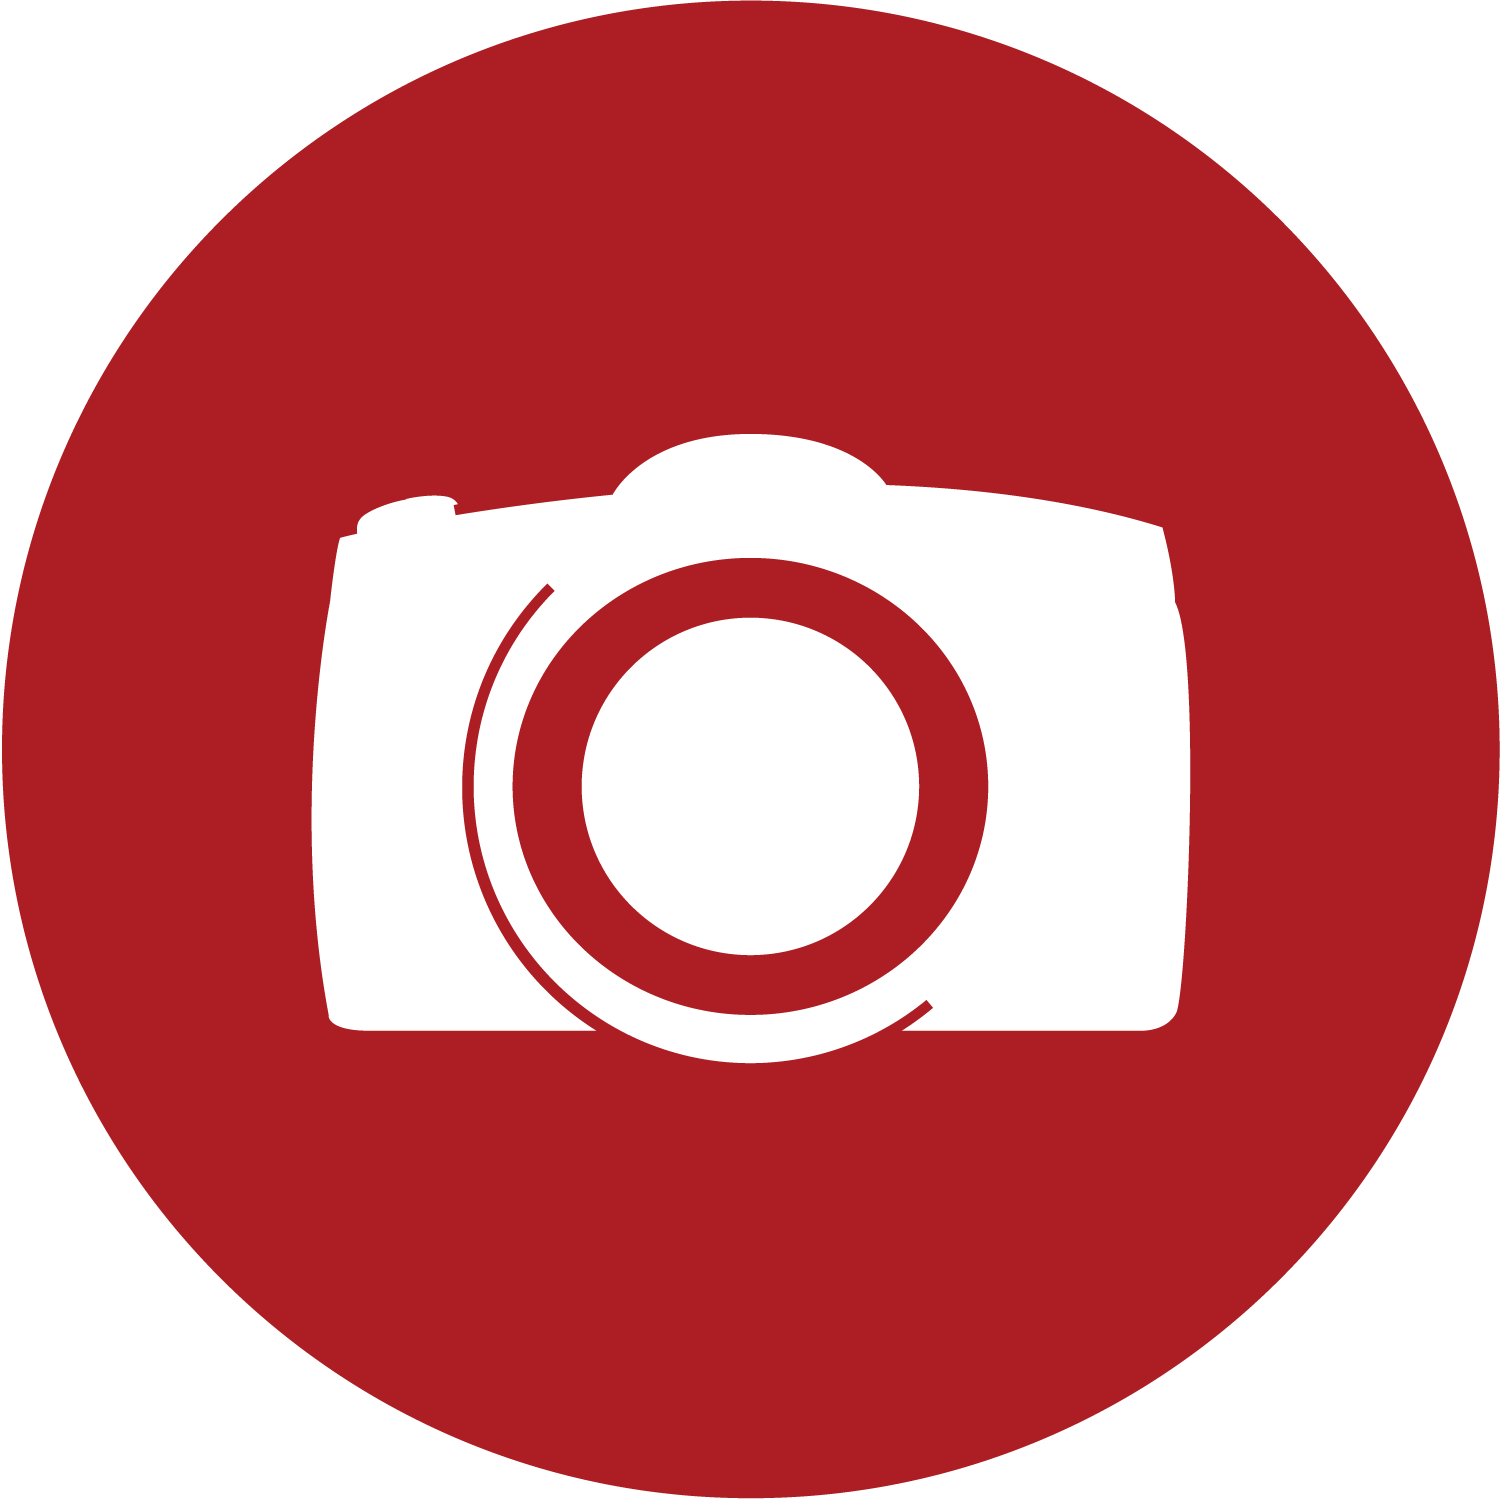 Camera Logo Png | Free Download Clip Art | Free Clip Art | on ...